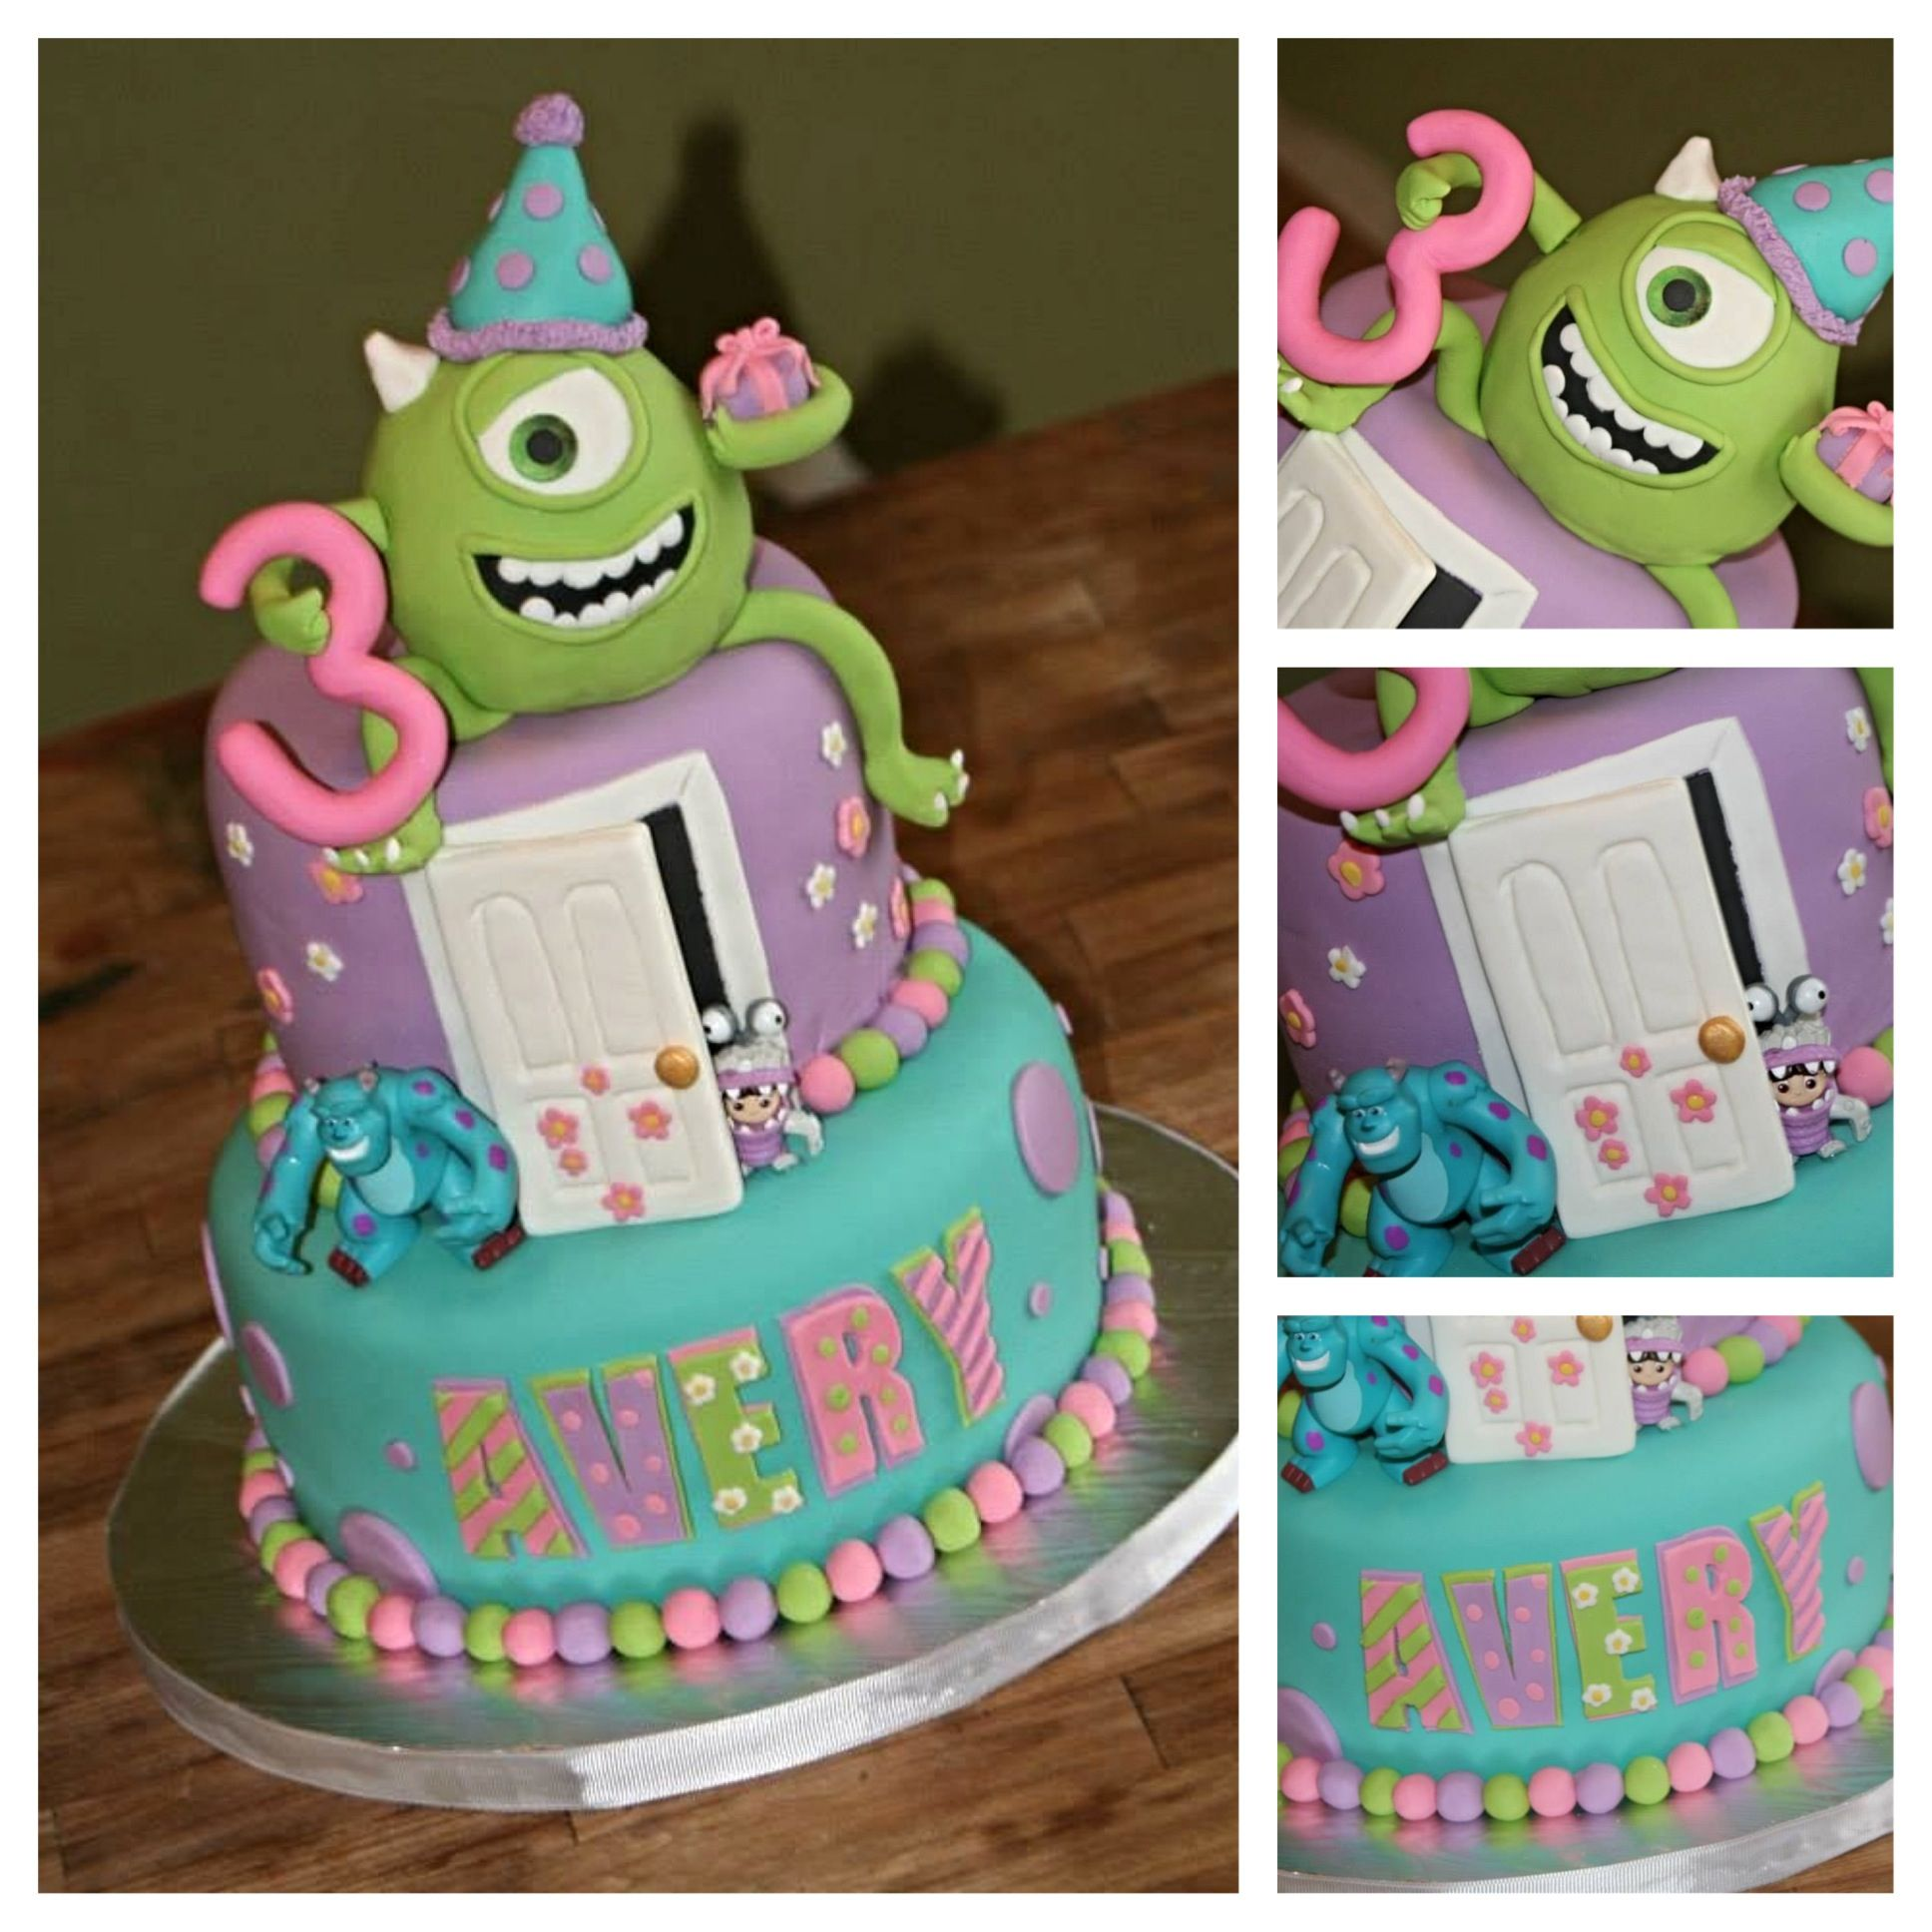 Pleasing Monsters Inc Cake With Images Monster Inc Cakes Birthday Personalised Birthday Cards Epsylily Jamesorg